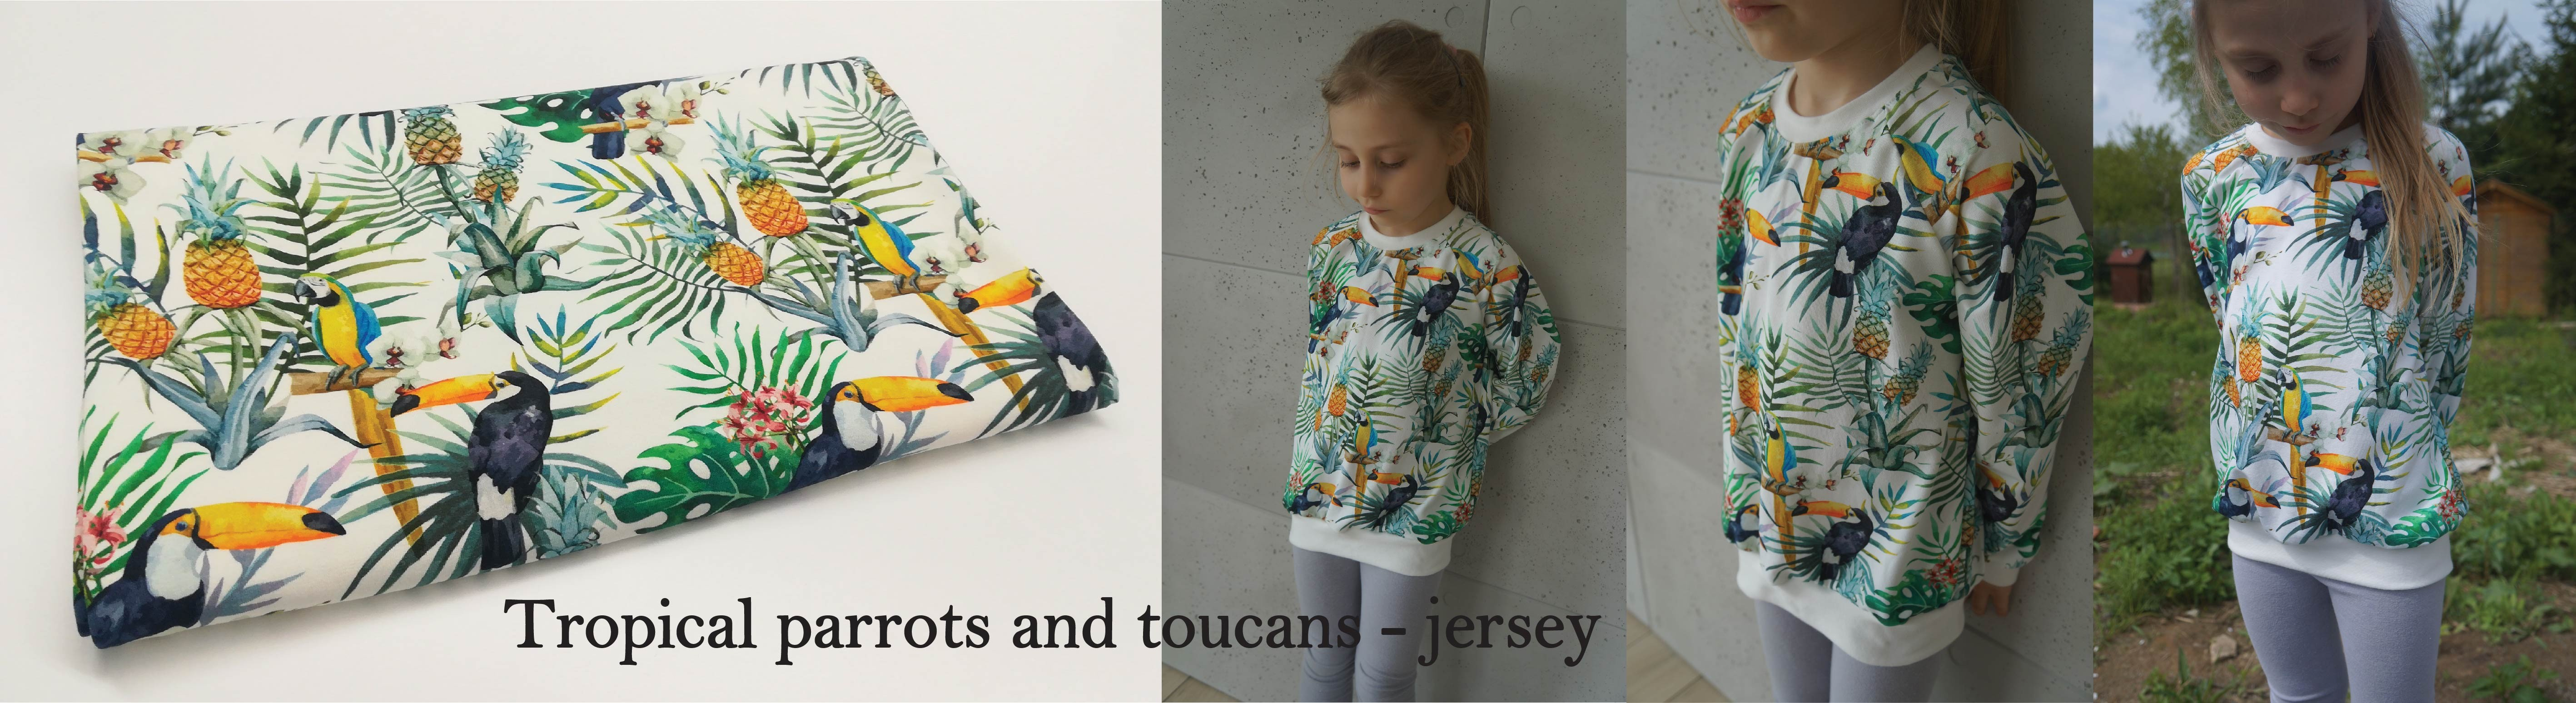 Tropical parrots and toucans - jersey